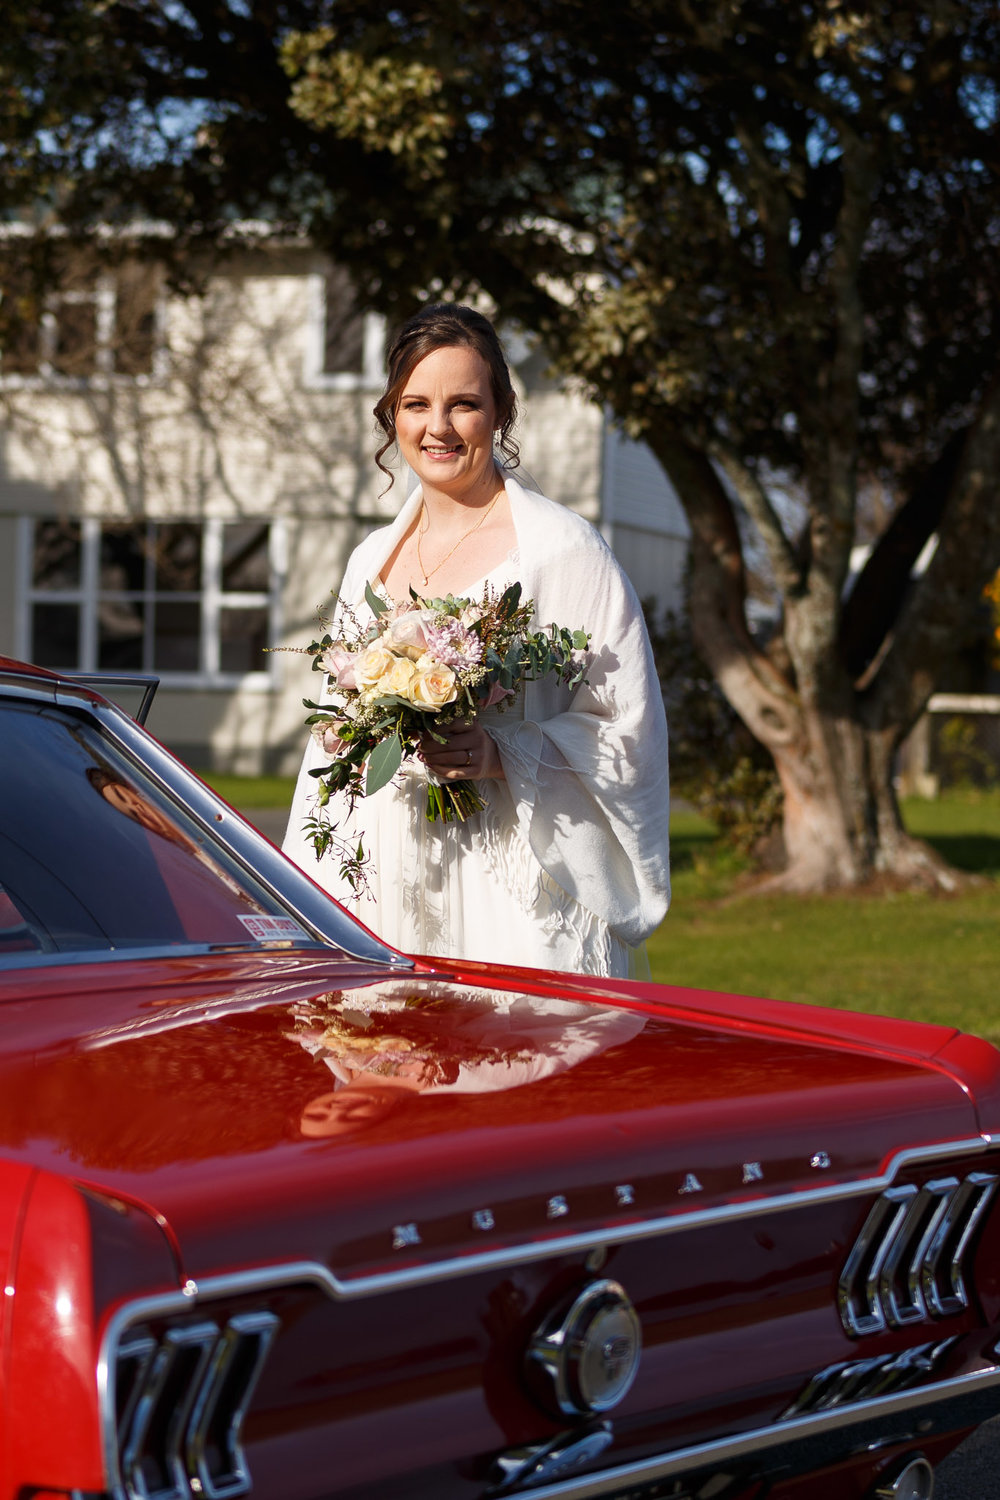 highlight_wedding_photography_manawatu_palmerston_north_new_zealand_rangitikei_golf_ohakea-18.jpg